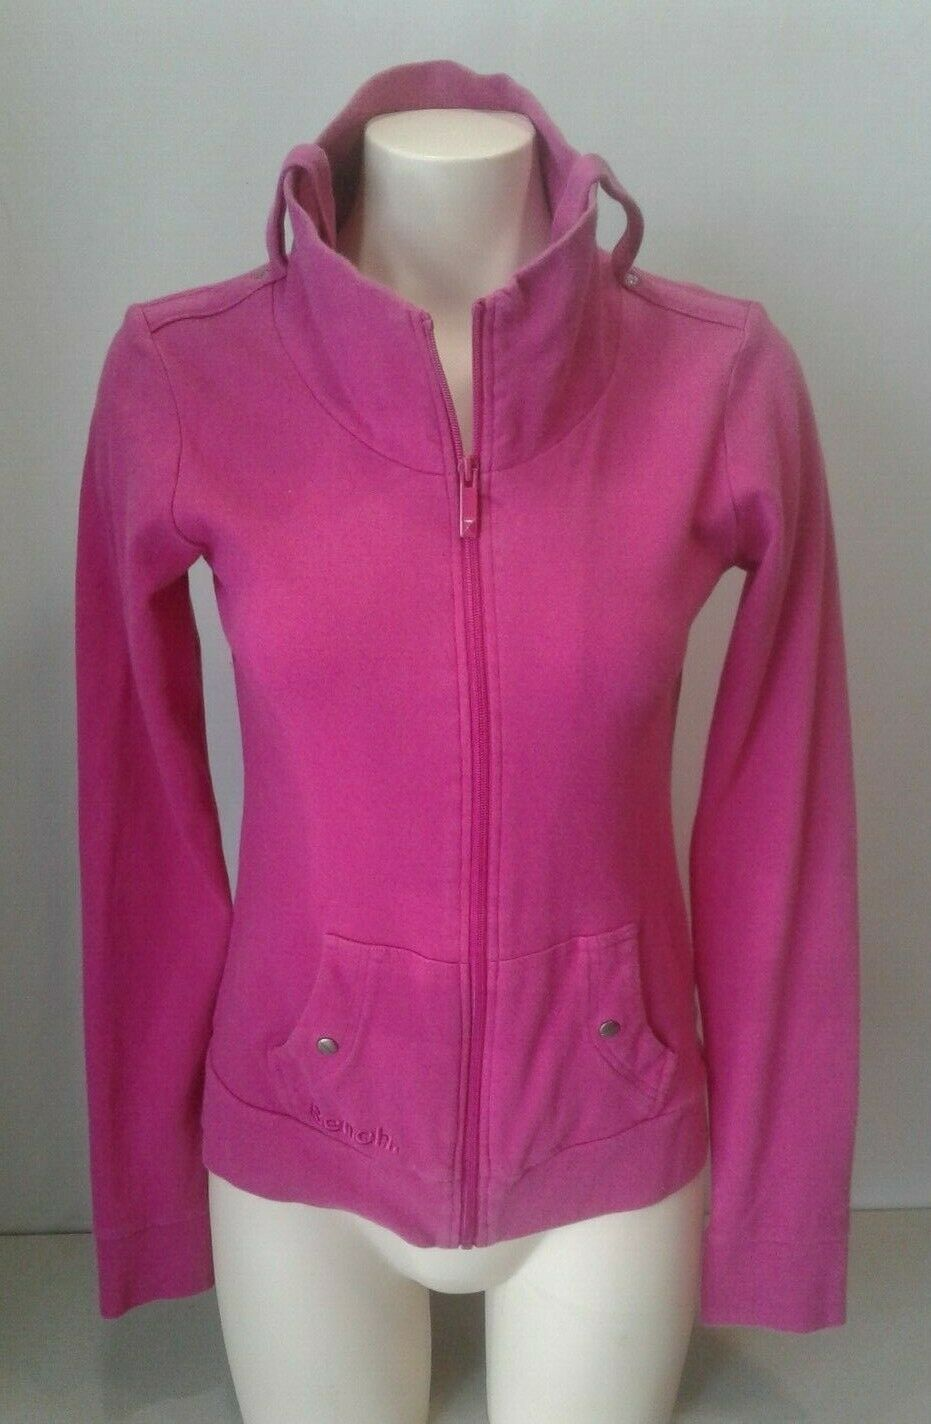 Bench Women's Pink Long Sleeve Full Zip Mock Neck Cotton Jacket Size Medium